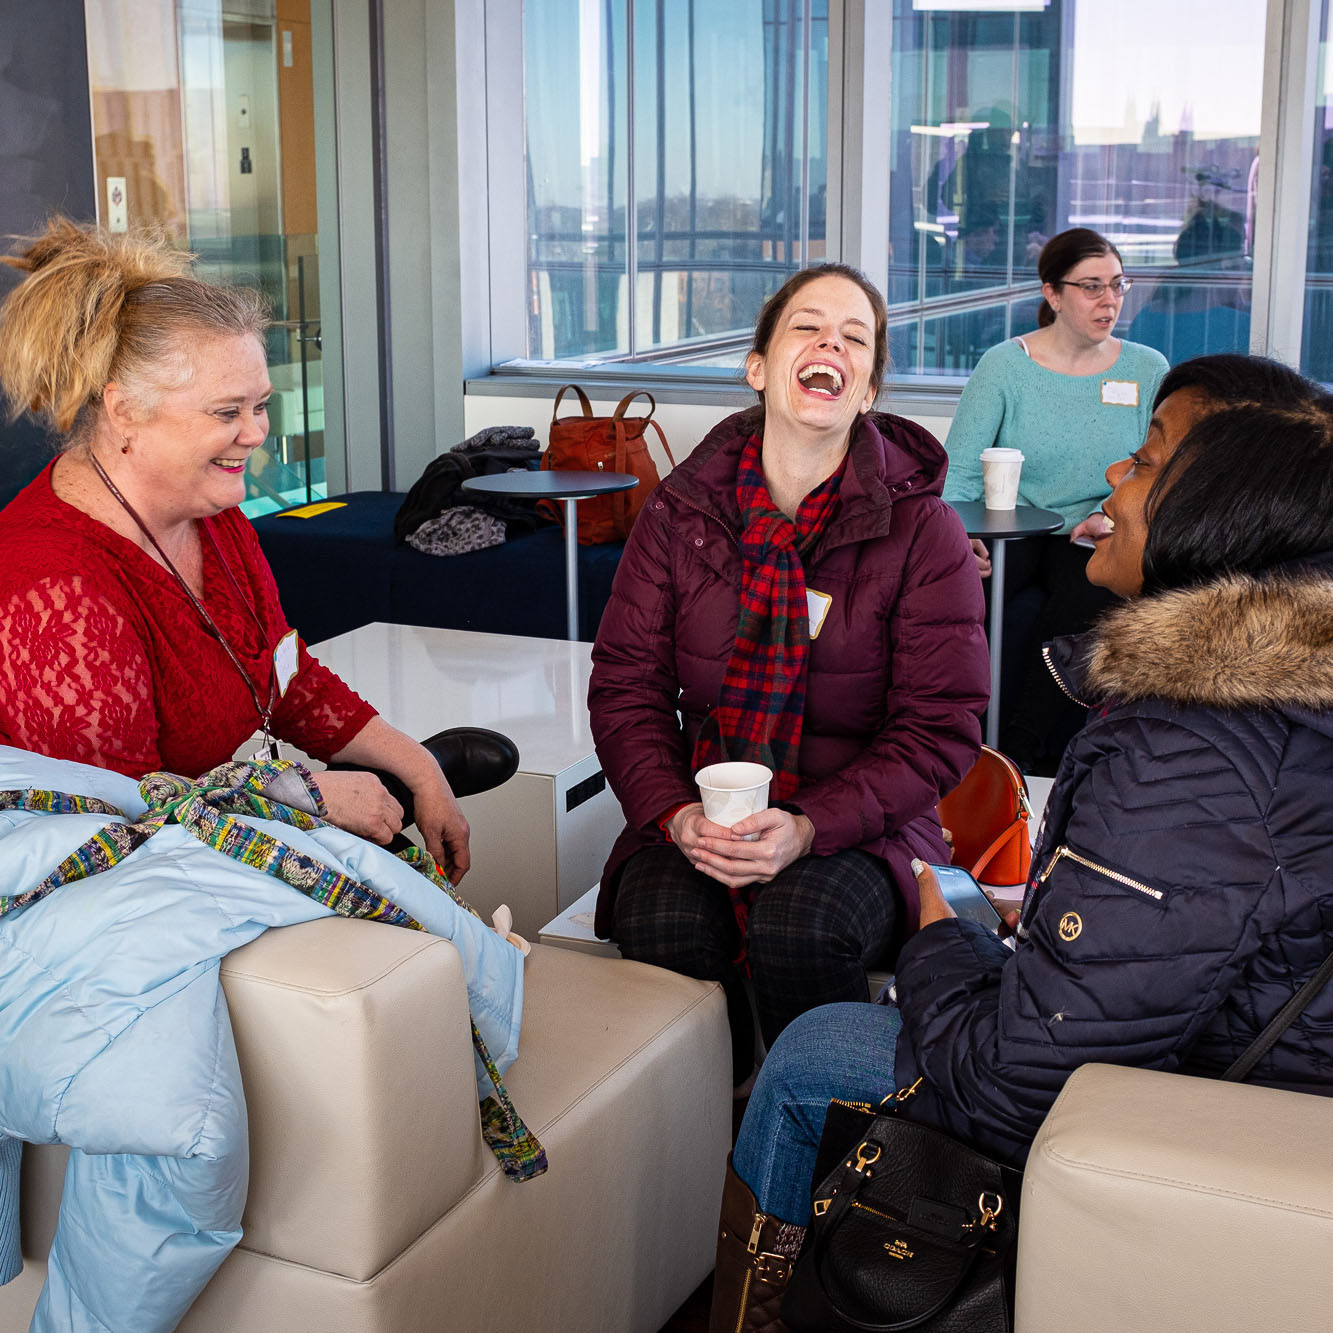 Two women wearing red talking at staff Valentine's coffee hour